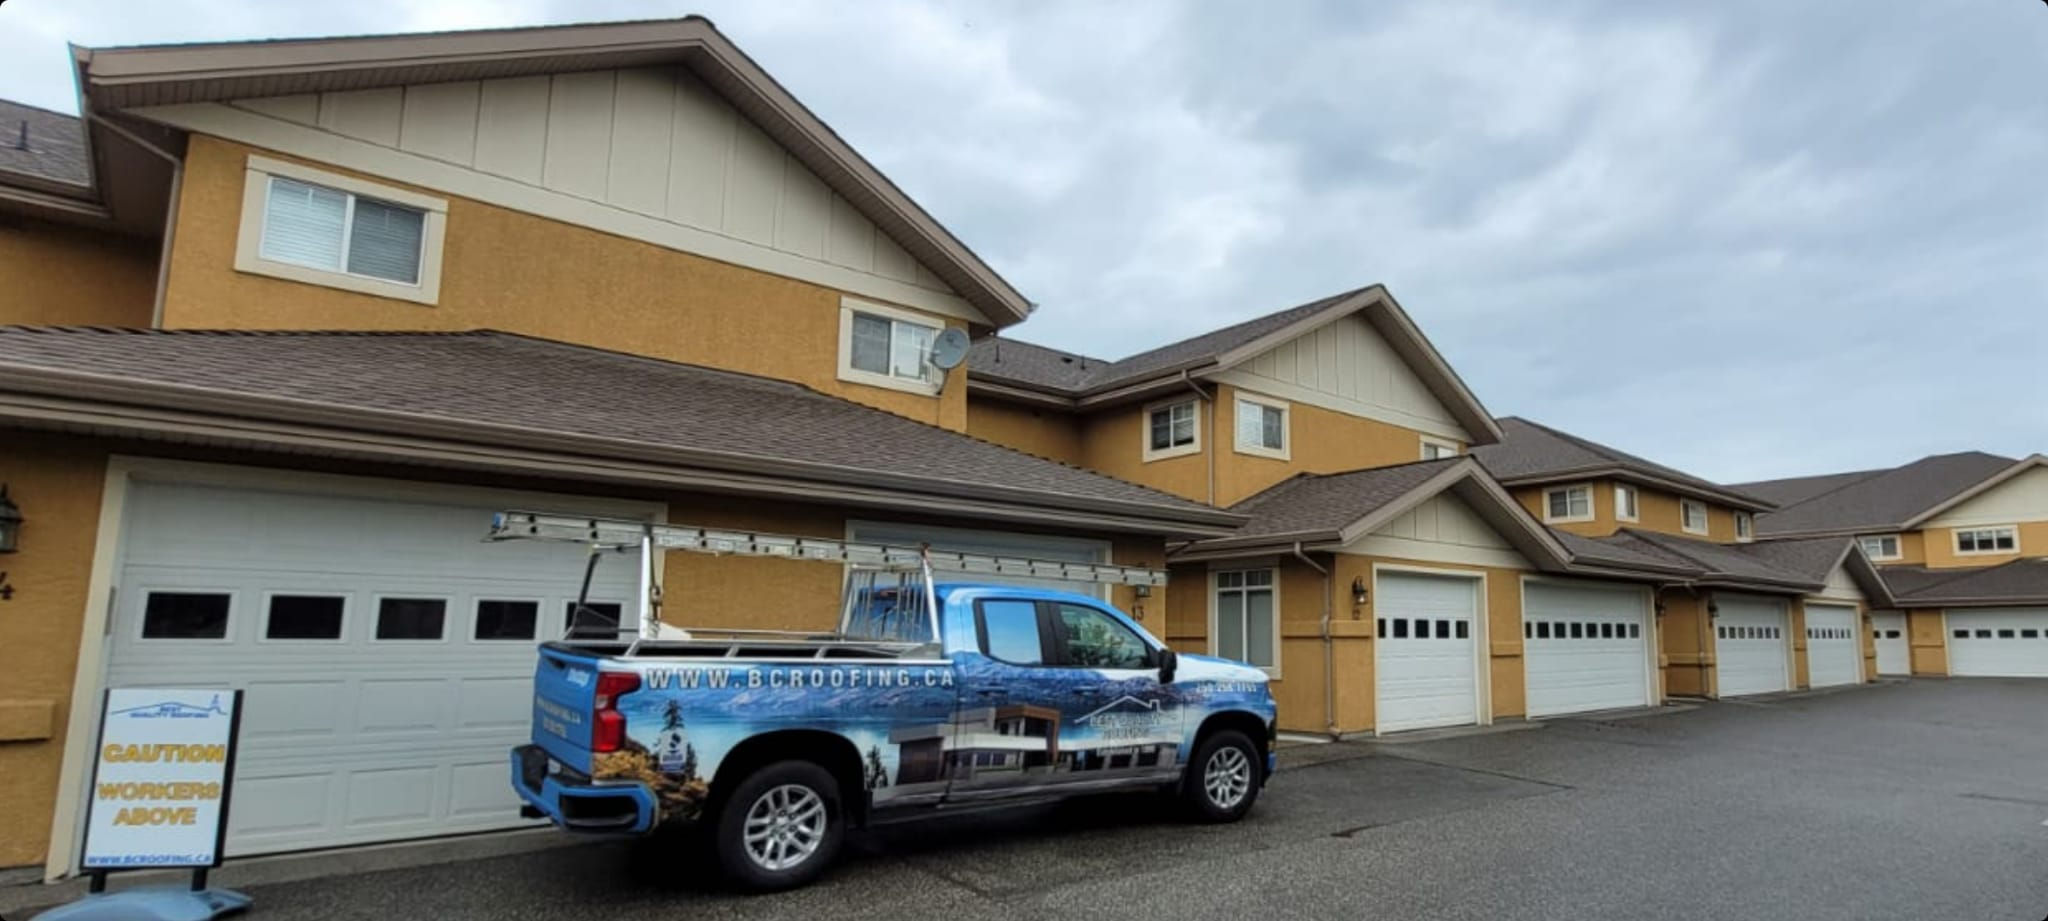 BQR Roofing in Lake Country of the Okanagan